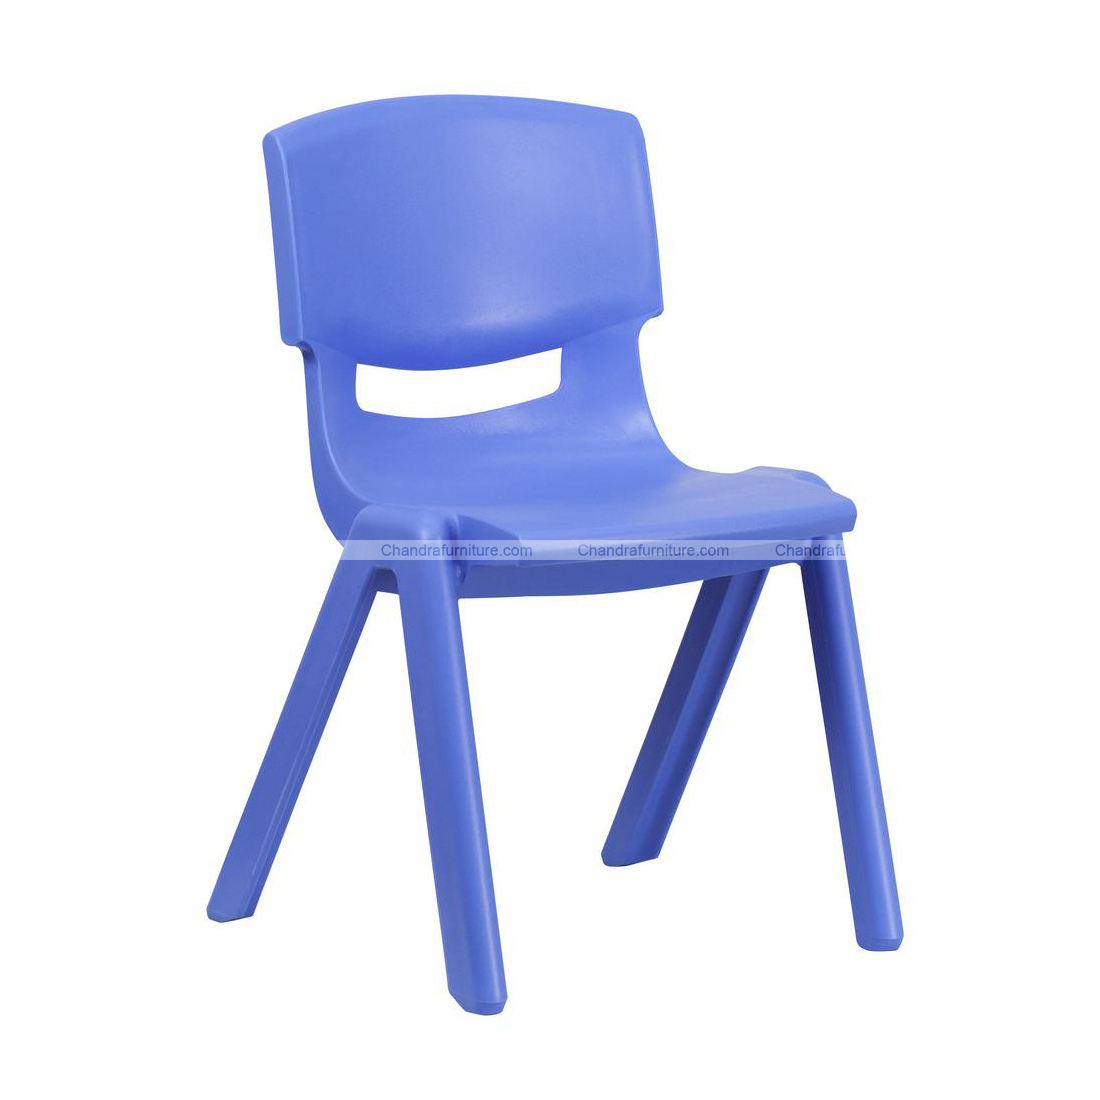 Chandra Furniture Playgroup Seating Chair Blue Colour